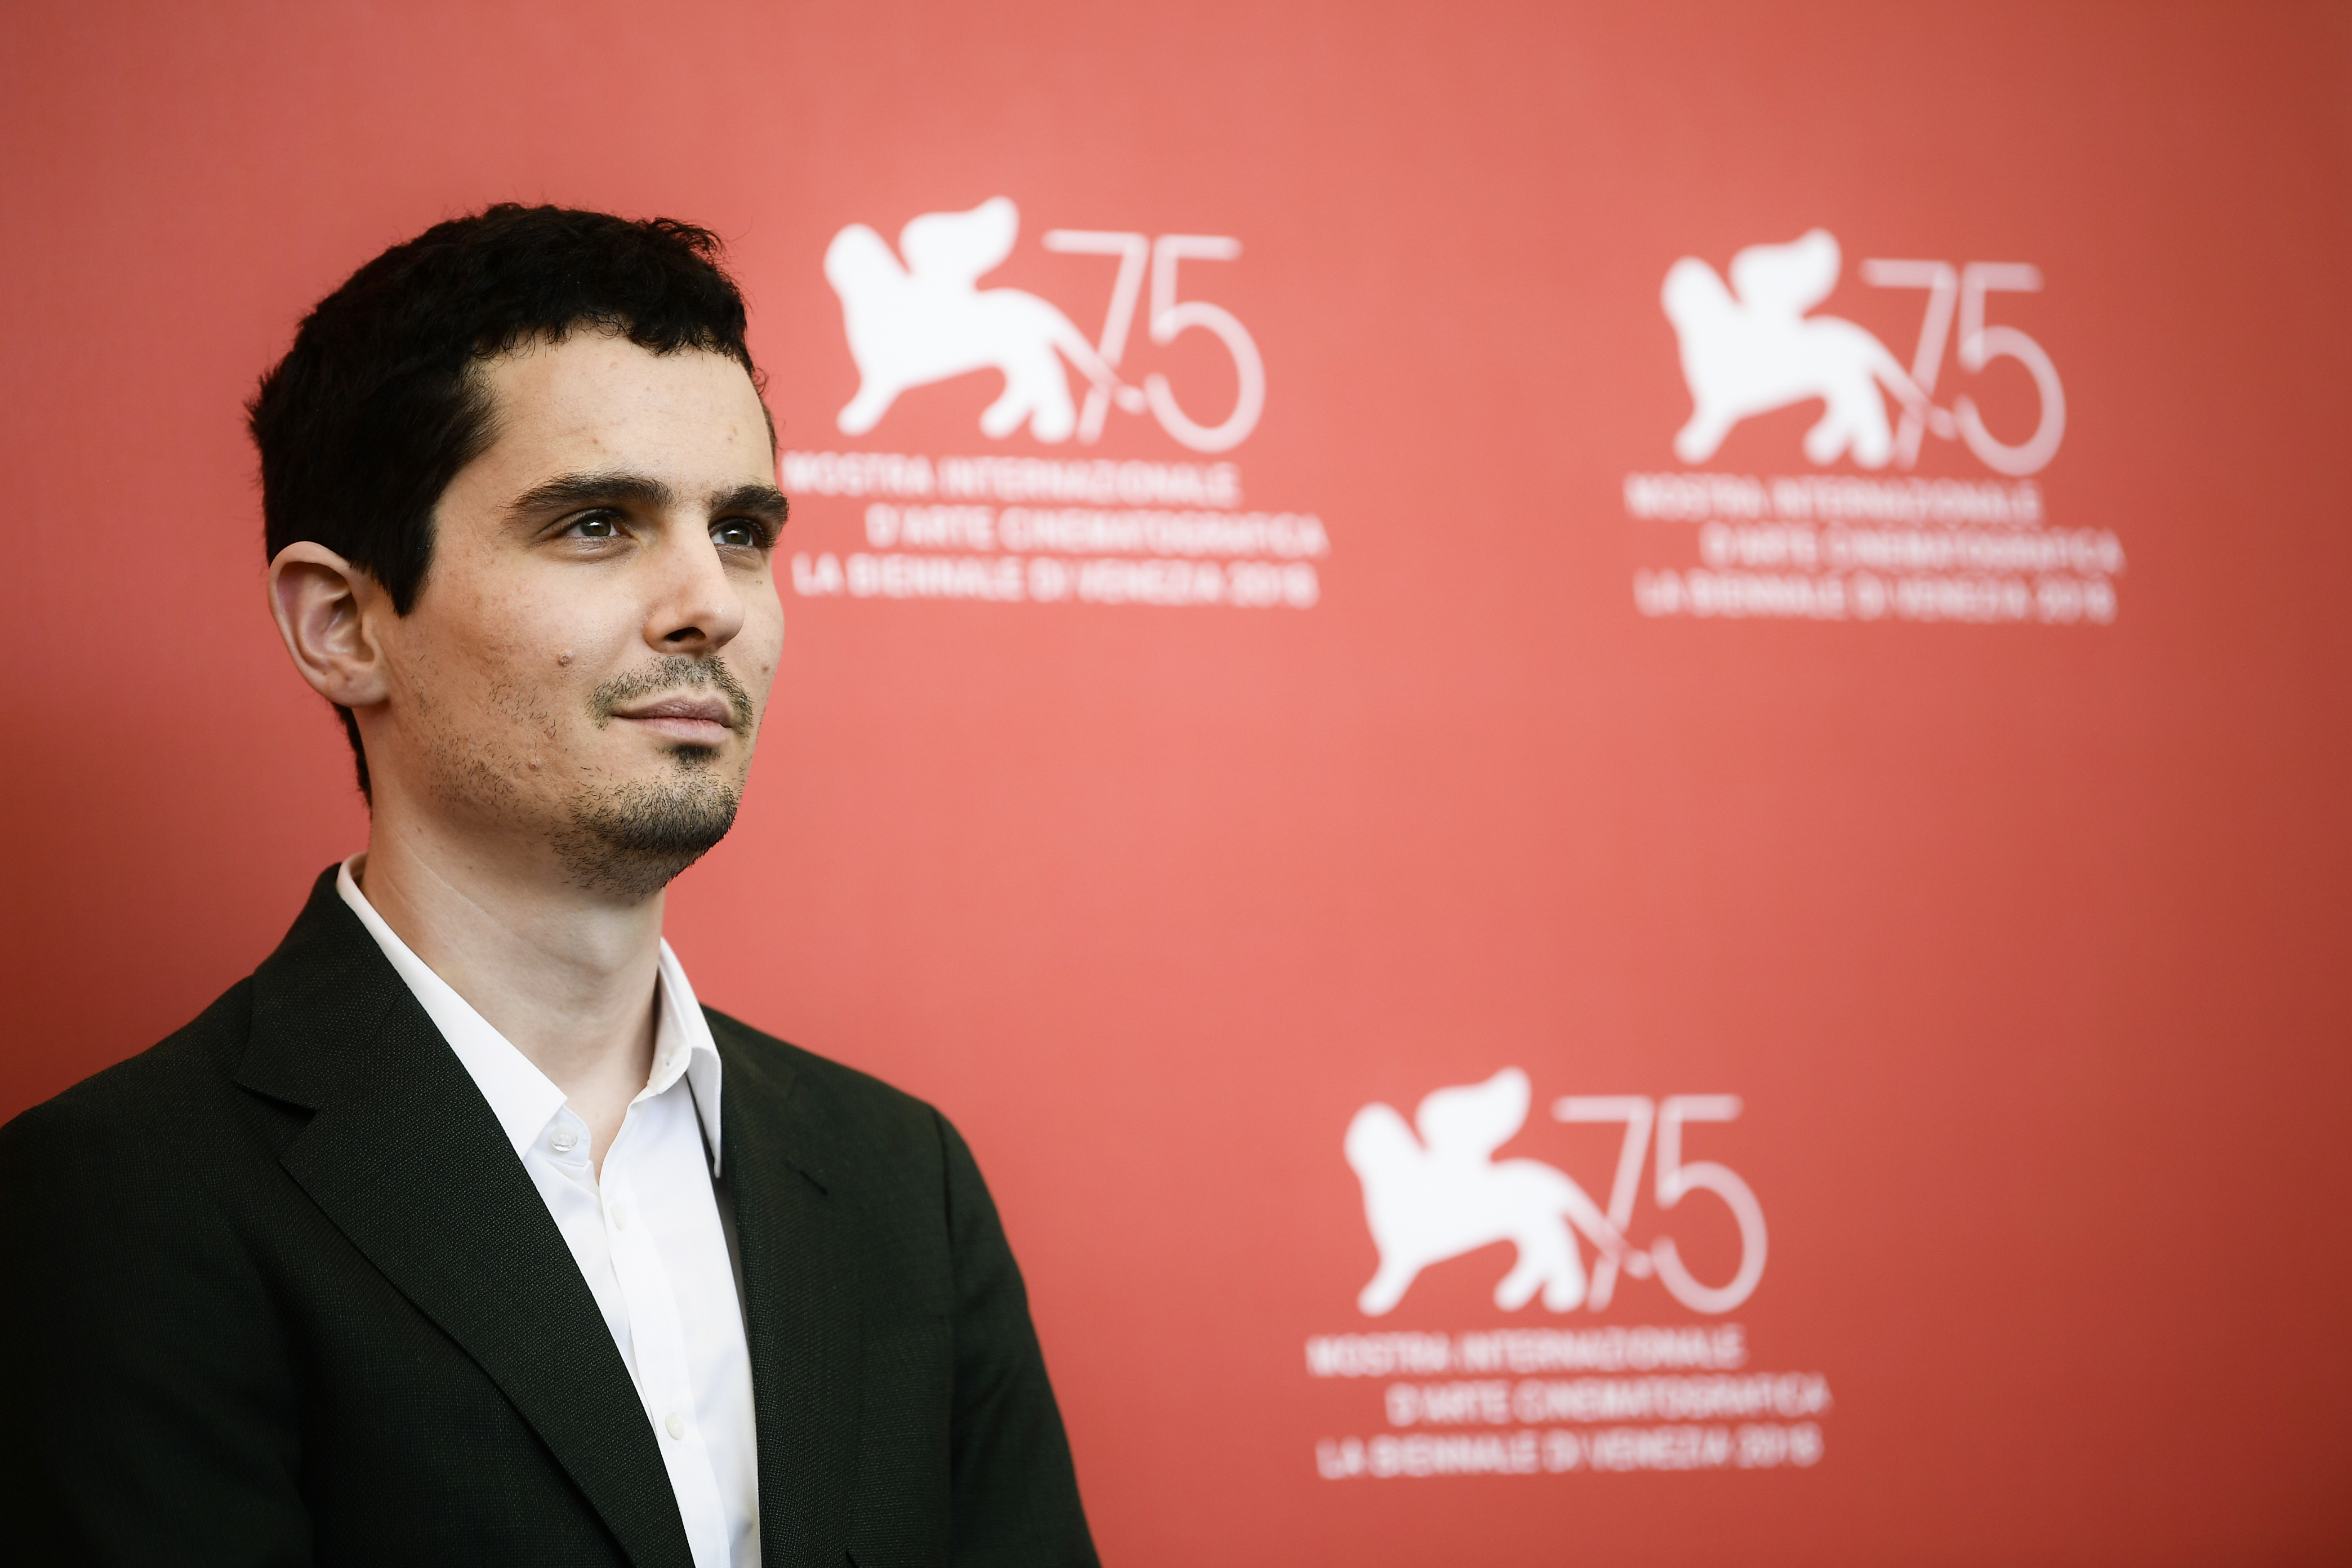 Director Damien Chazelle during a photocall for the film  First Man  on August 29, 2018 prior to its premiere in competition at the 75th Venice Film Festival at Venice Lido.